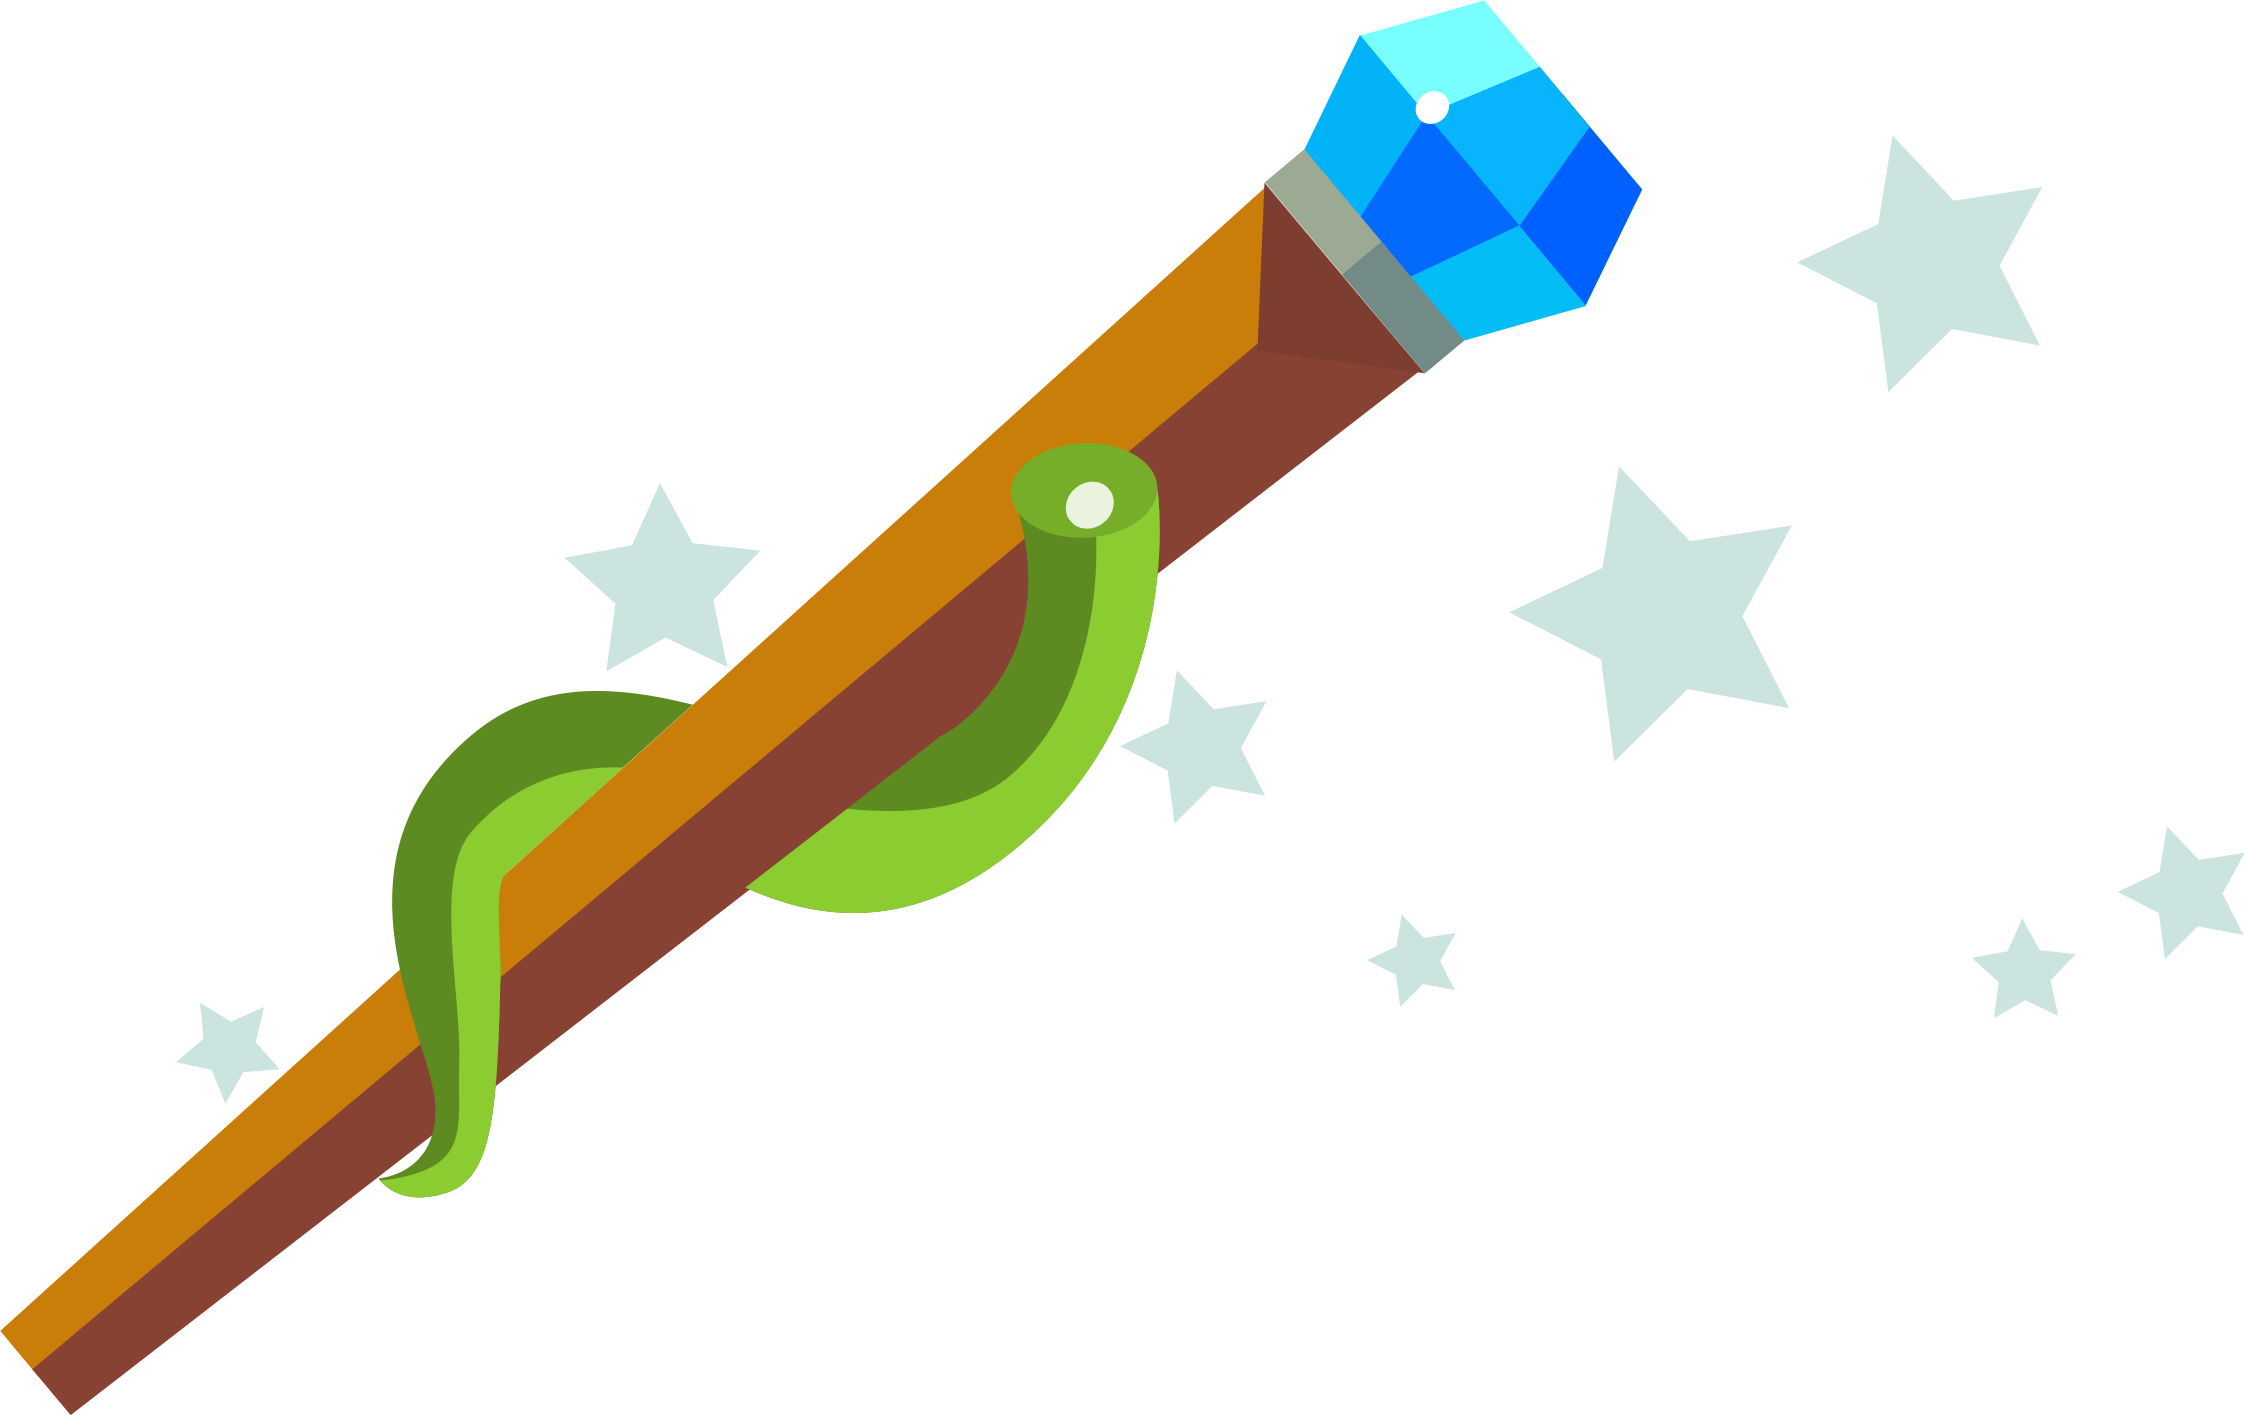 Magic Wand Png